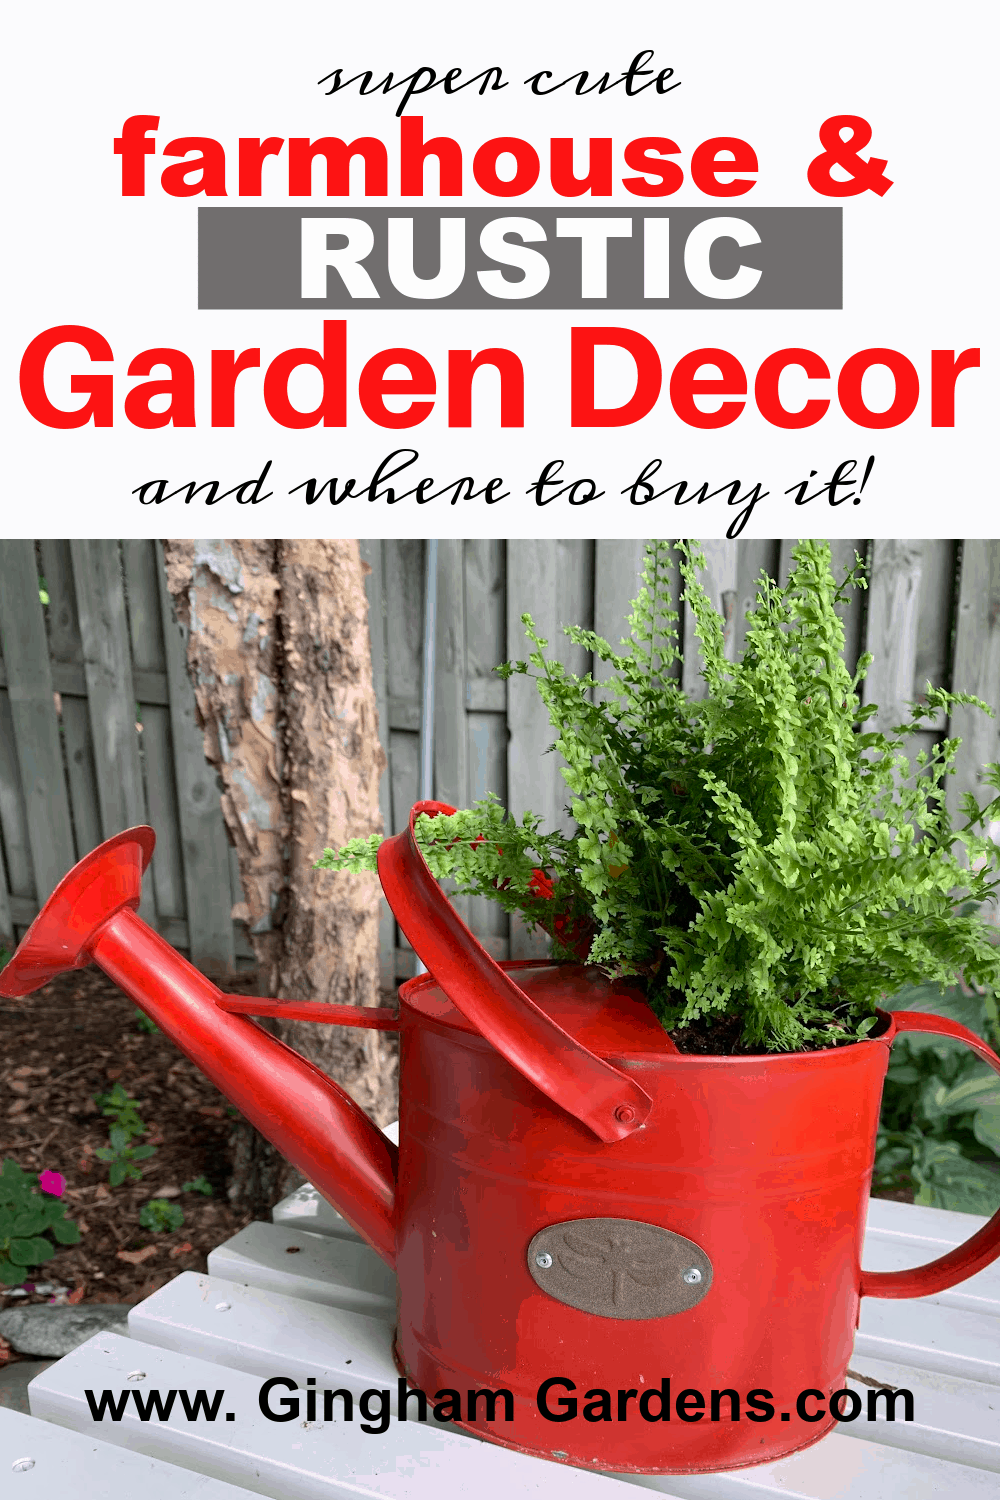 Image of a red watering can used as a planter with text overlay - Farmhouse and Rustic Garden Decor